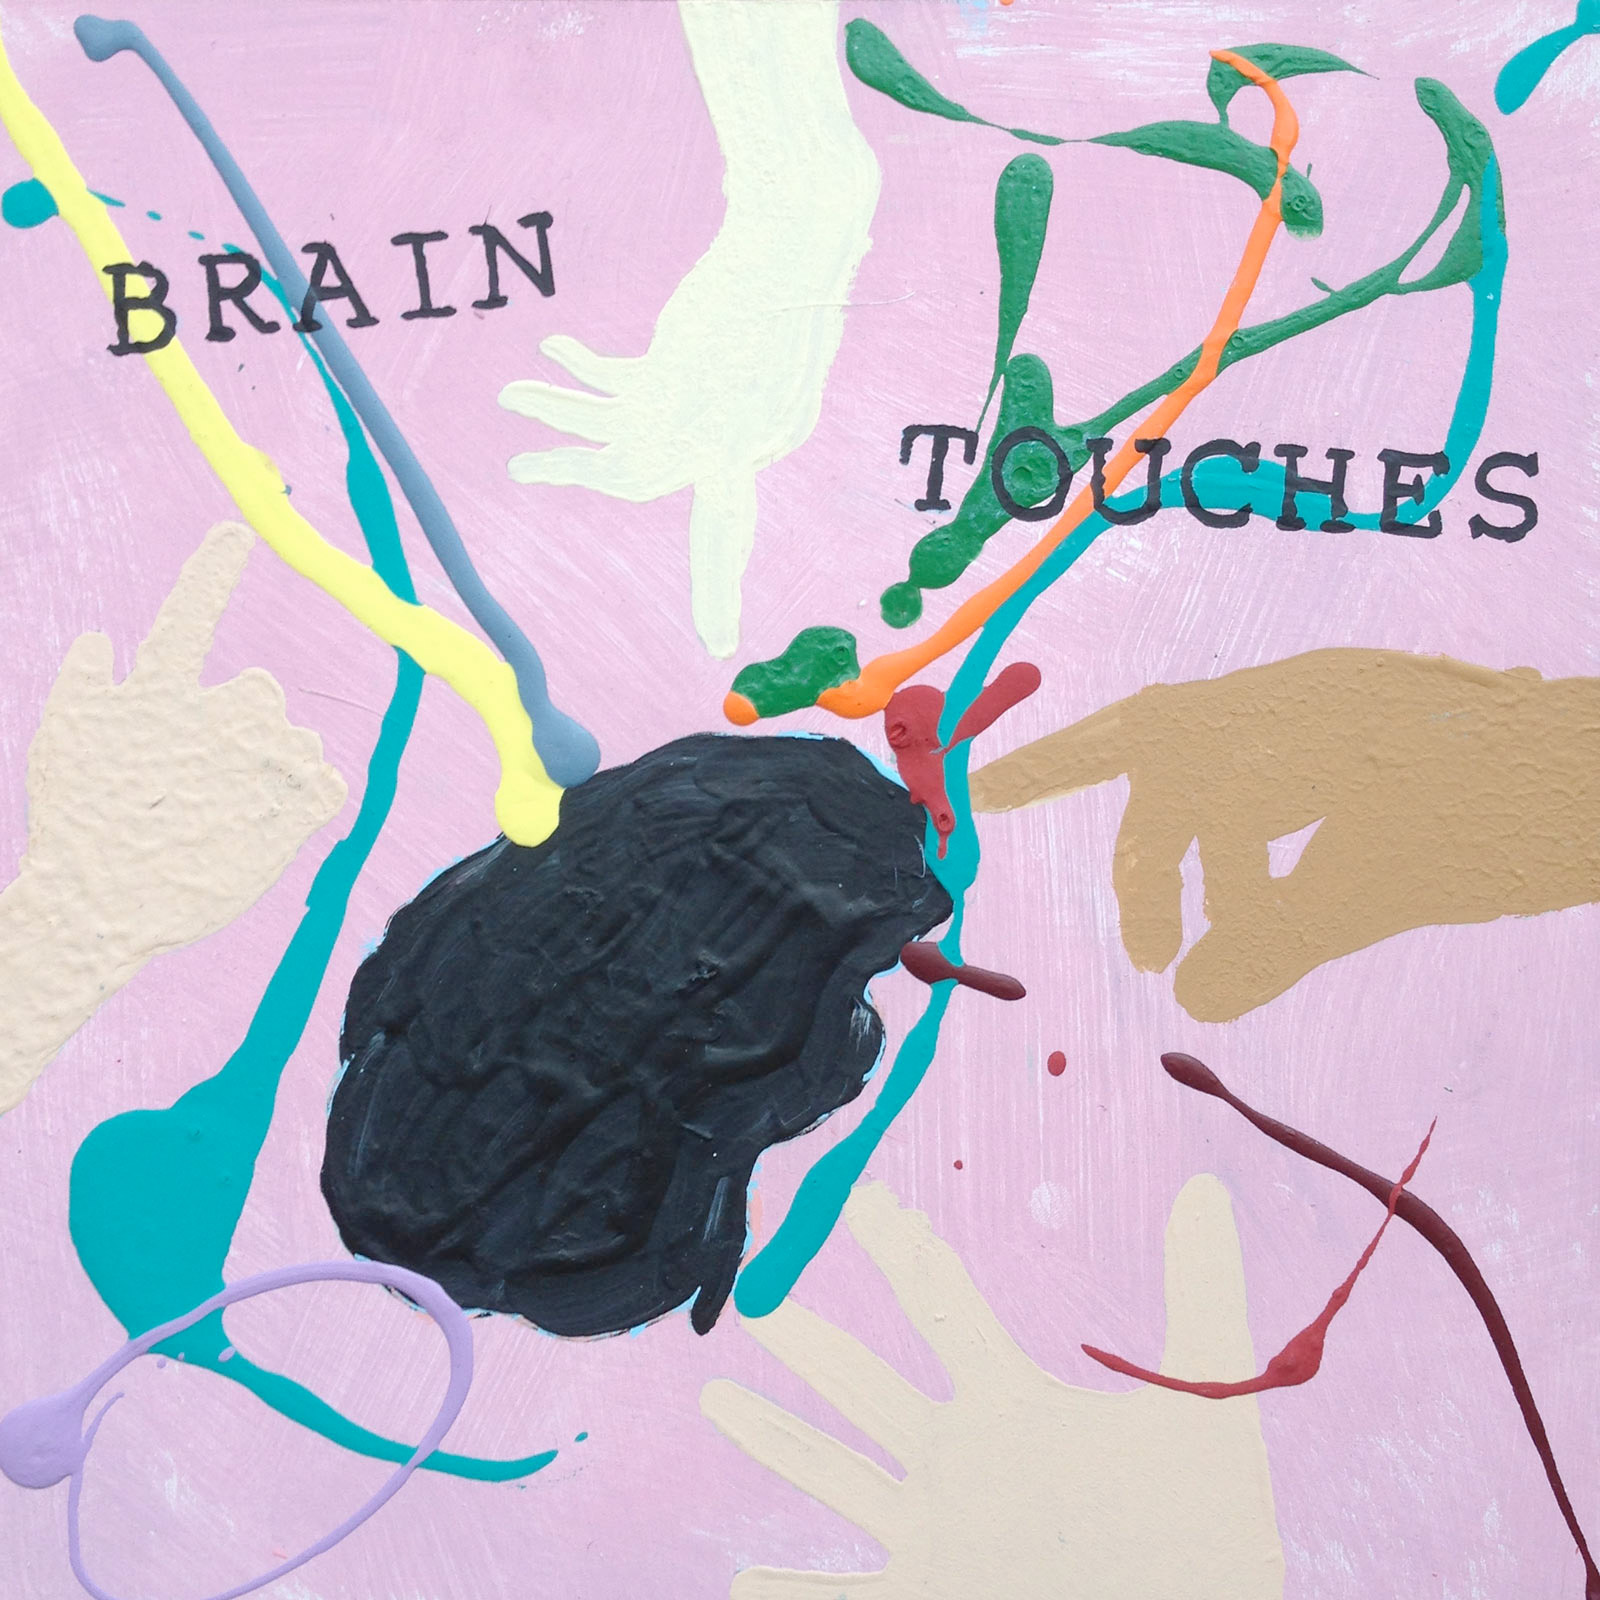 Boyd Richard, painting, brain touches